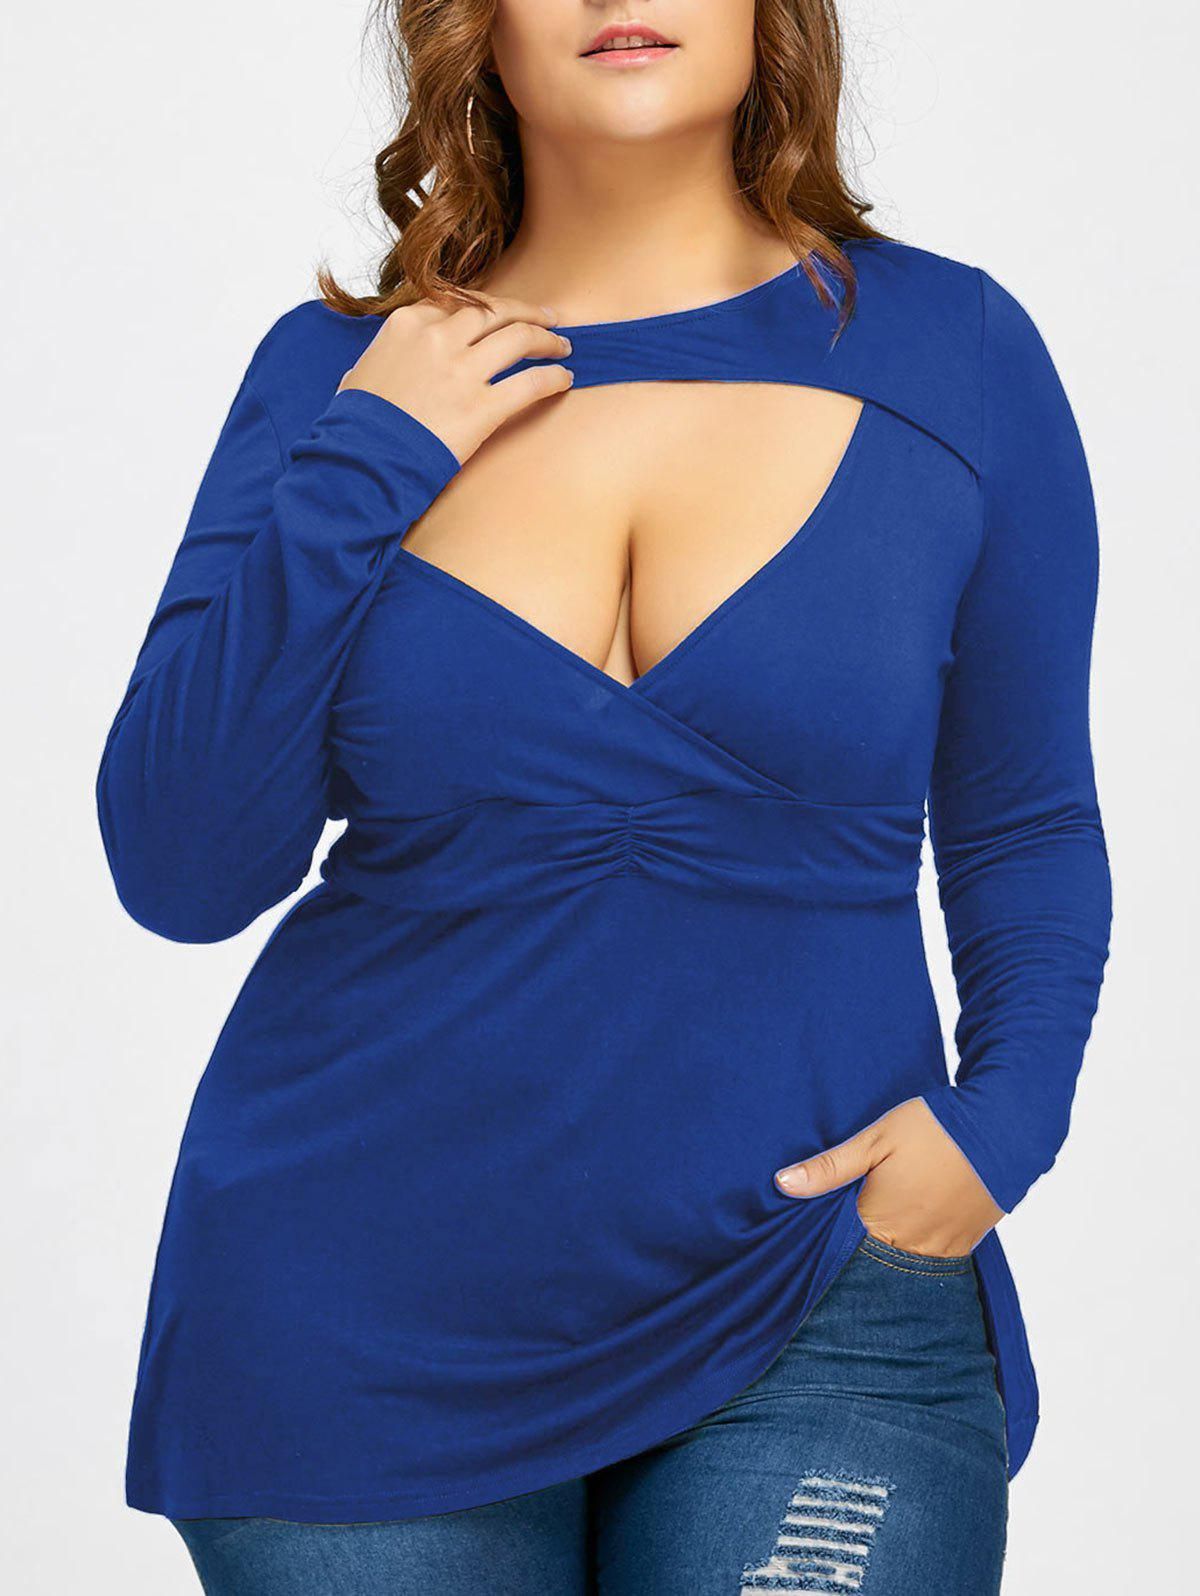 Empire Waist Plus Size Low Cut T-shirtWOMEN<br><br>Size: 3XL; Color: BLUE; Material: Cotton Blends,Spandex; Shirt Length: Long; Sleeve Length: Full; Collar: Crew Neck; Style: Fashion; Season: Fall,Spring; Pattern Type: Solid; Weight: 0.2970kg; Package Contents: 1 x T-shirt;